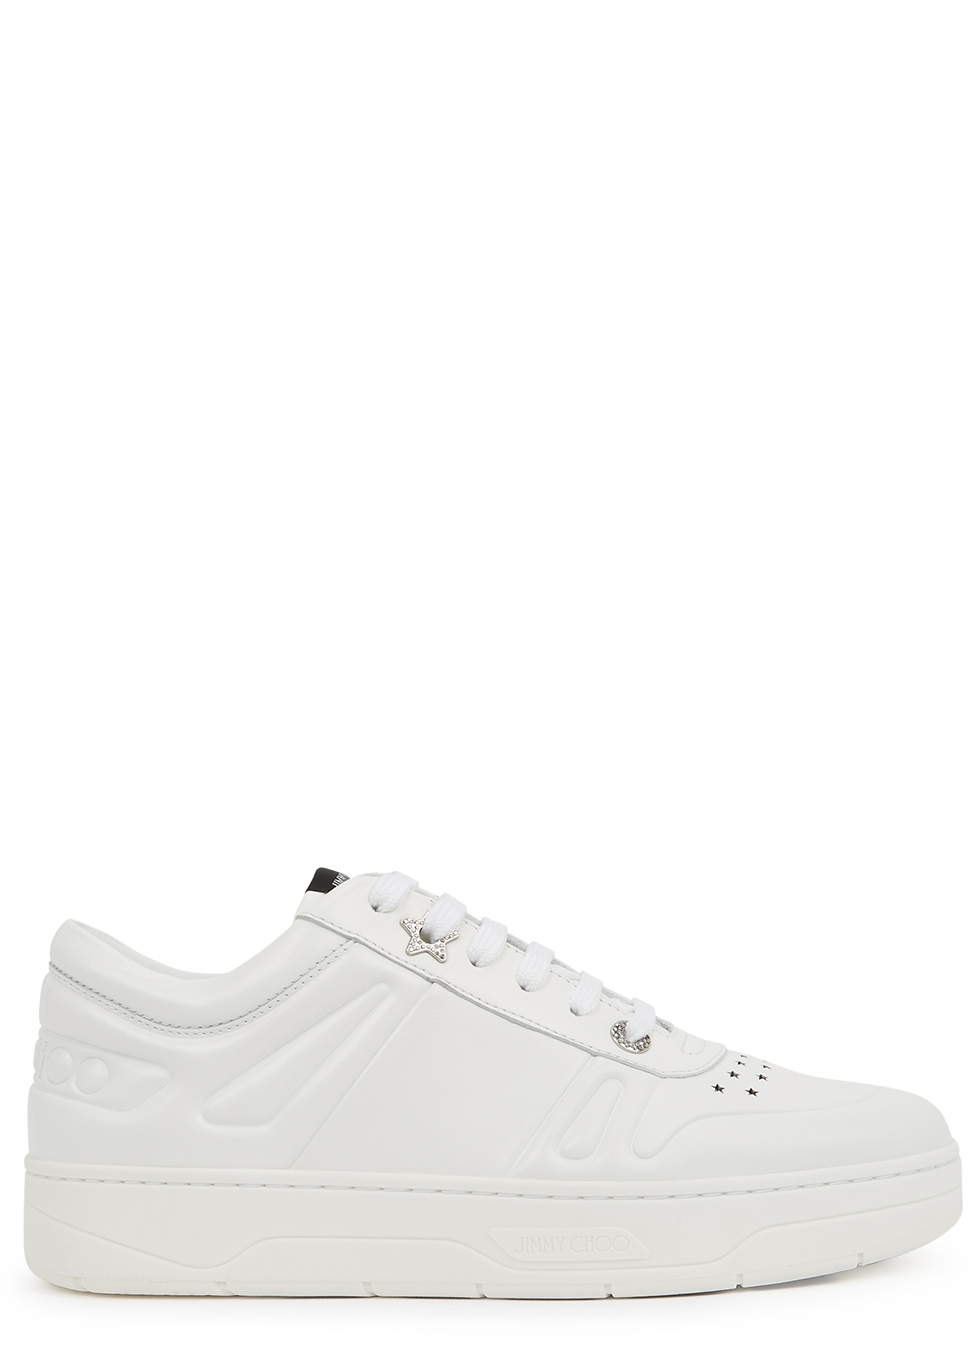 Hawaii/F white leather sneakers